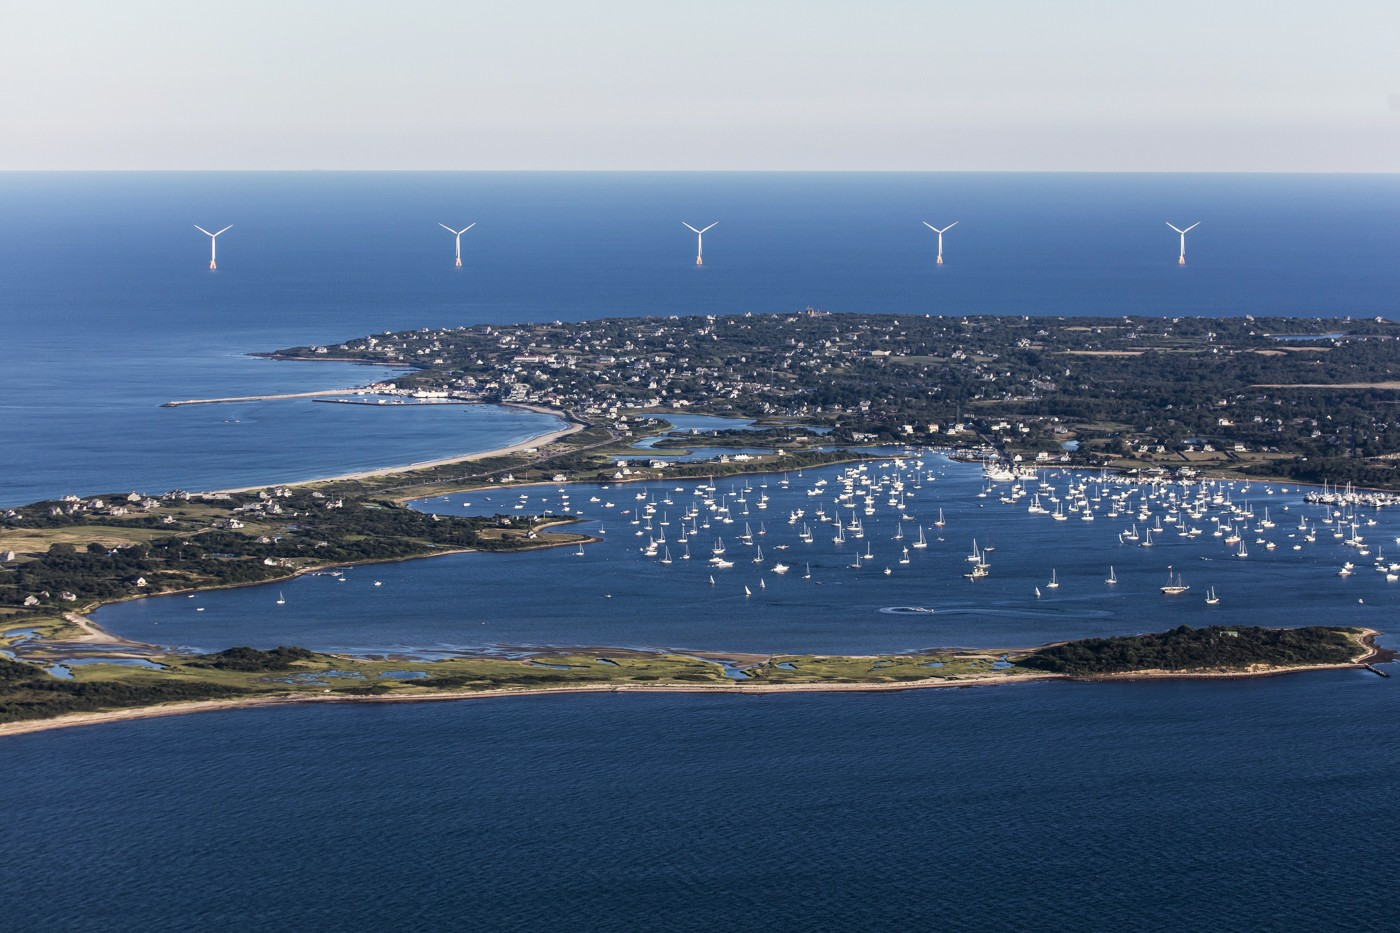 [:en]USA Block Island Offshore Wind Farm (Photo: © John Supancic)[:pt]Block Island Wind Farm photo © John Supancic[:fr]Block Island Wind Farm photo © John Supancic[:]